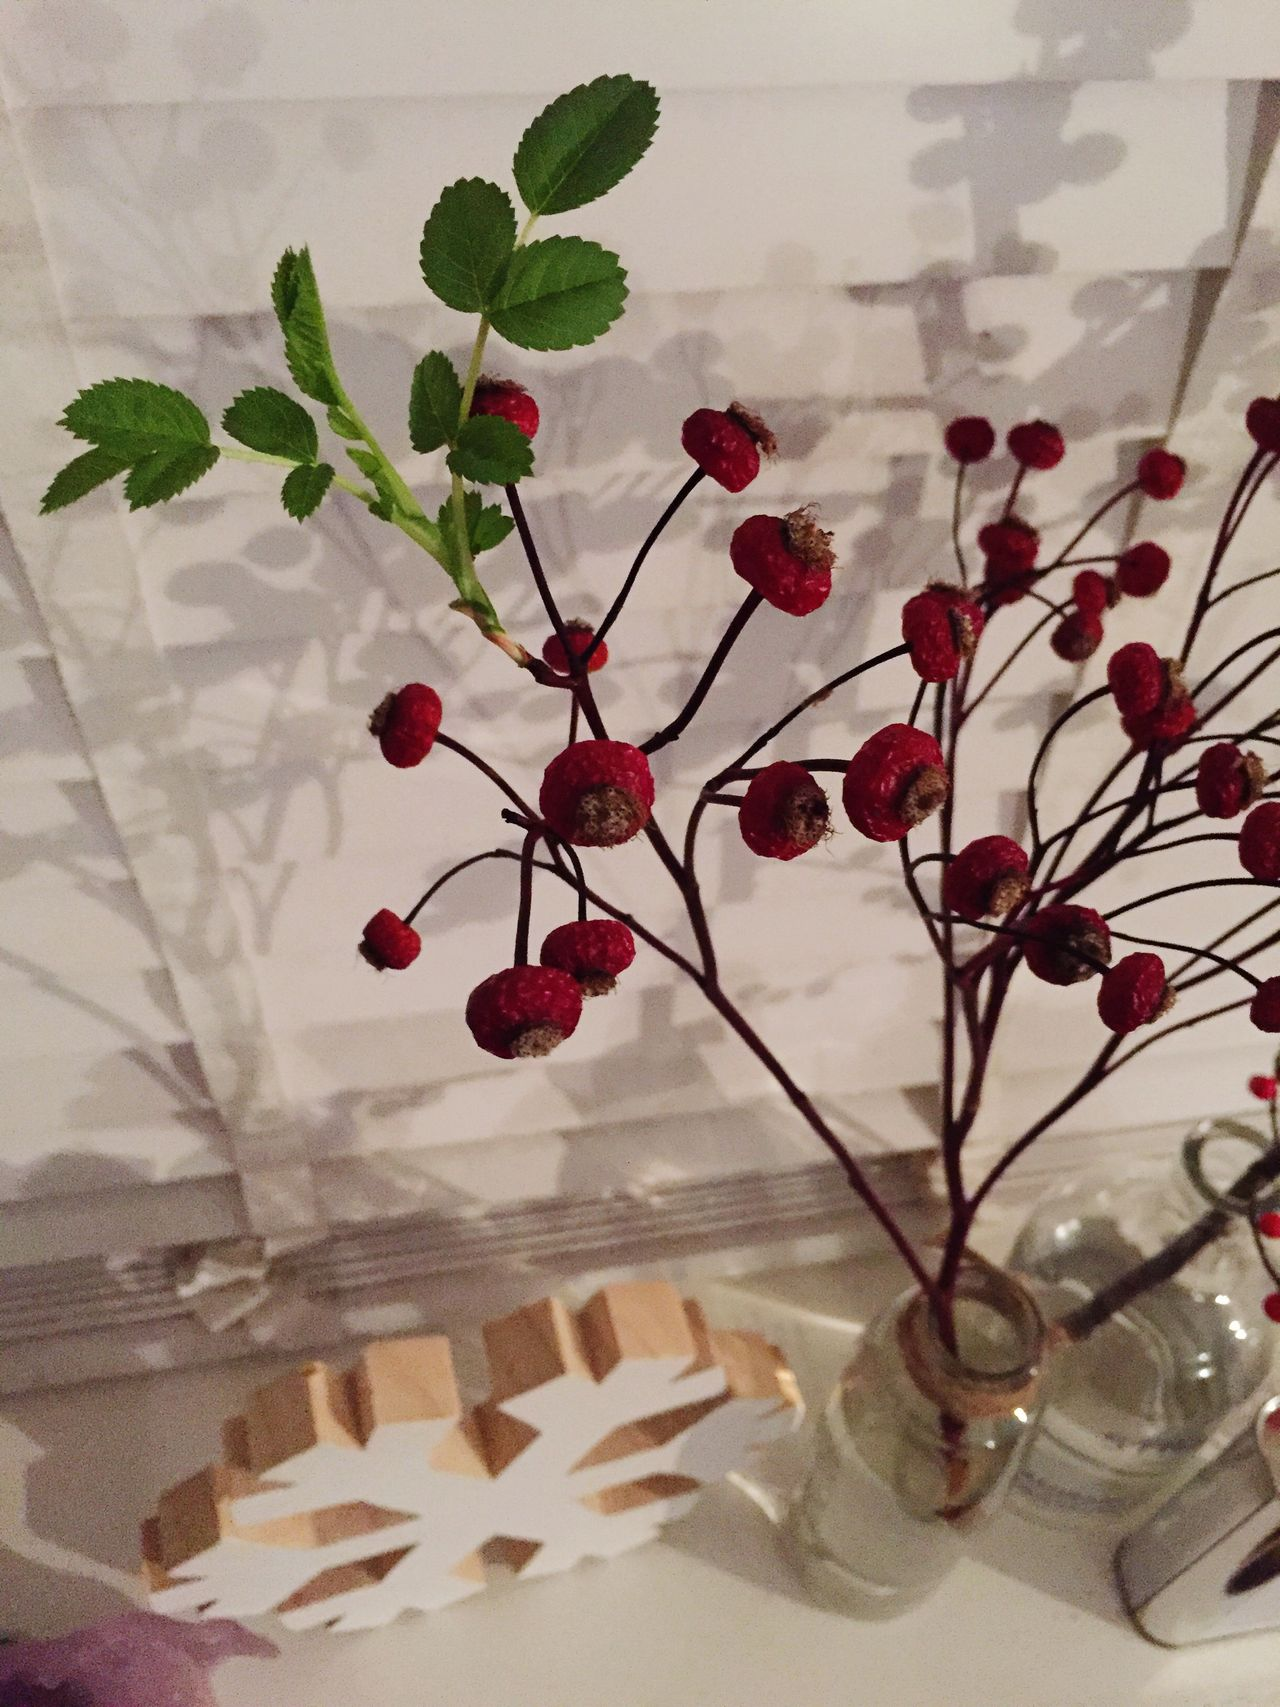 Happy New Life Christmastwig Redberries Green Leaves 2016 Newlife Shadow Whiteblinds